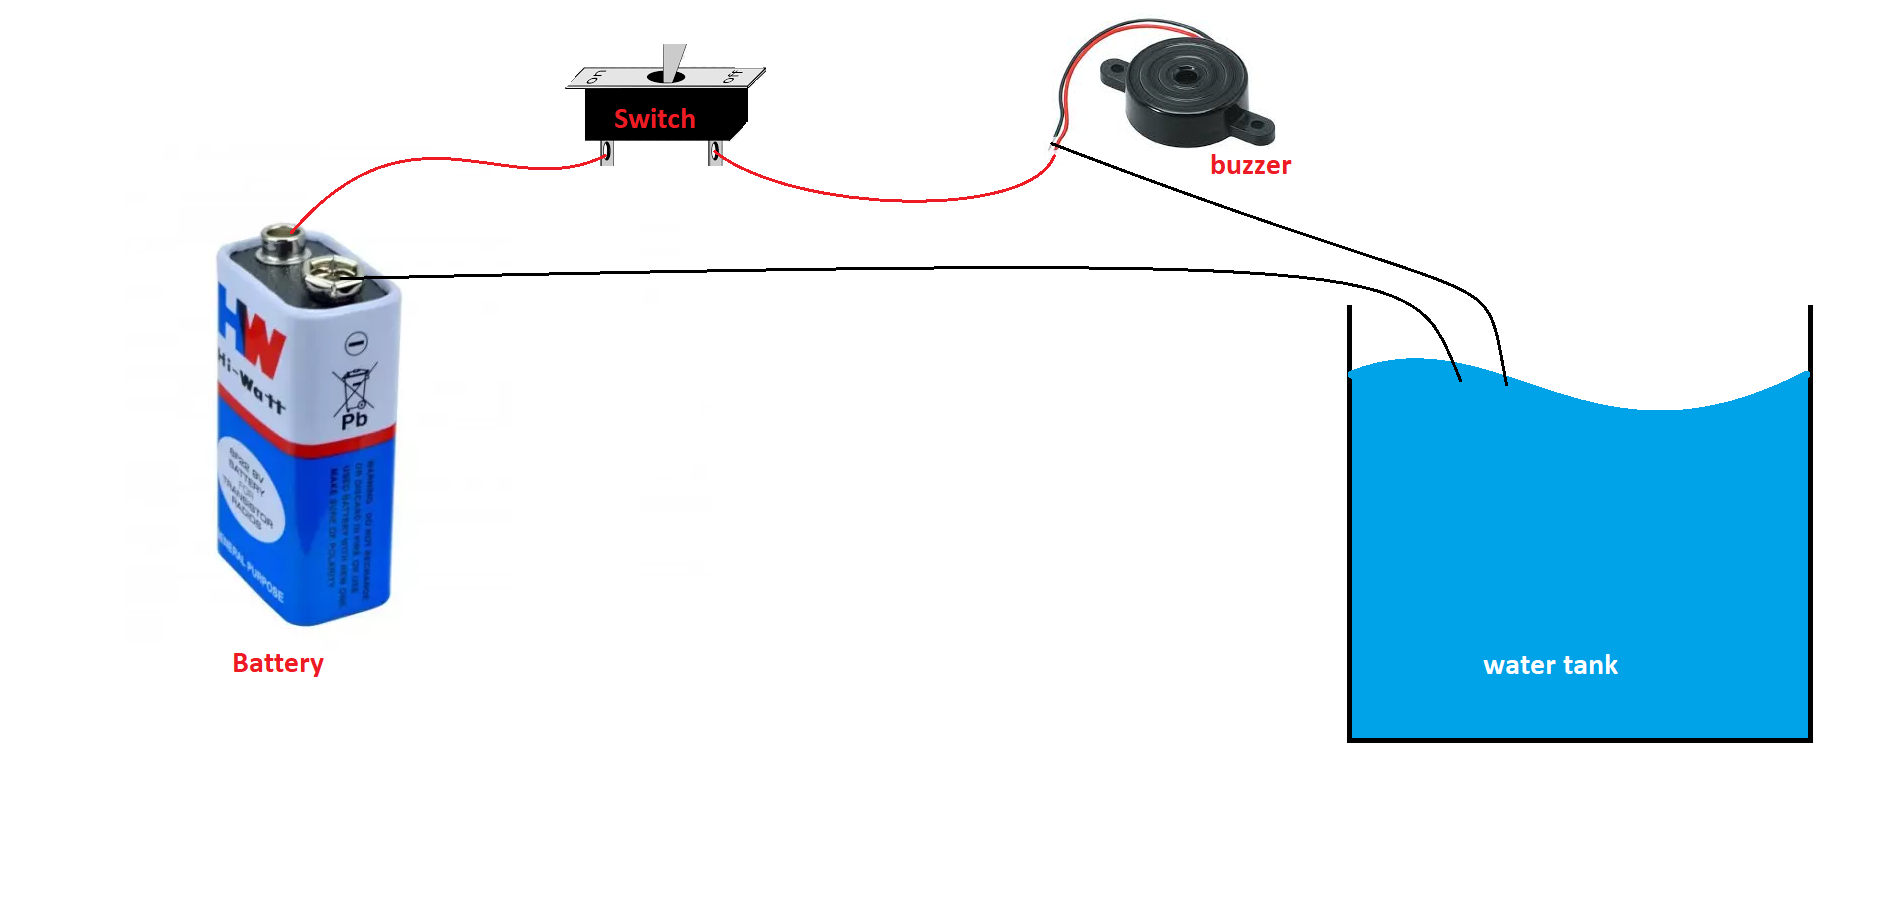 Cheap Water TANK OVER-FLOW Alarm System for home - Hackster.io